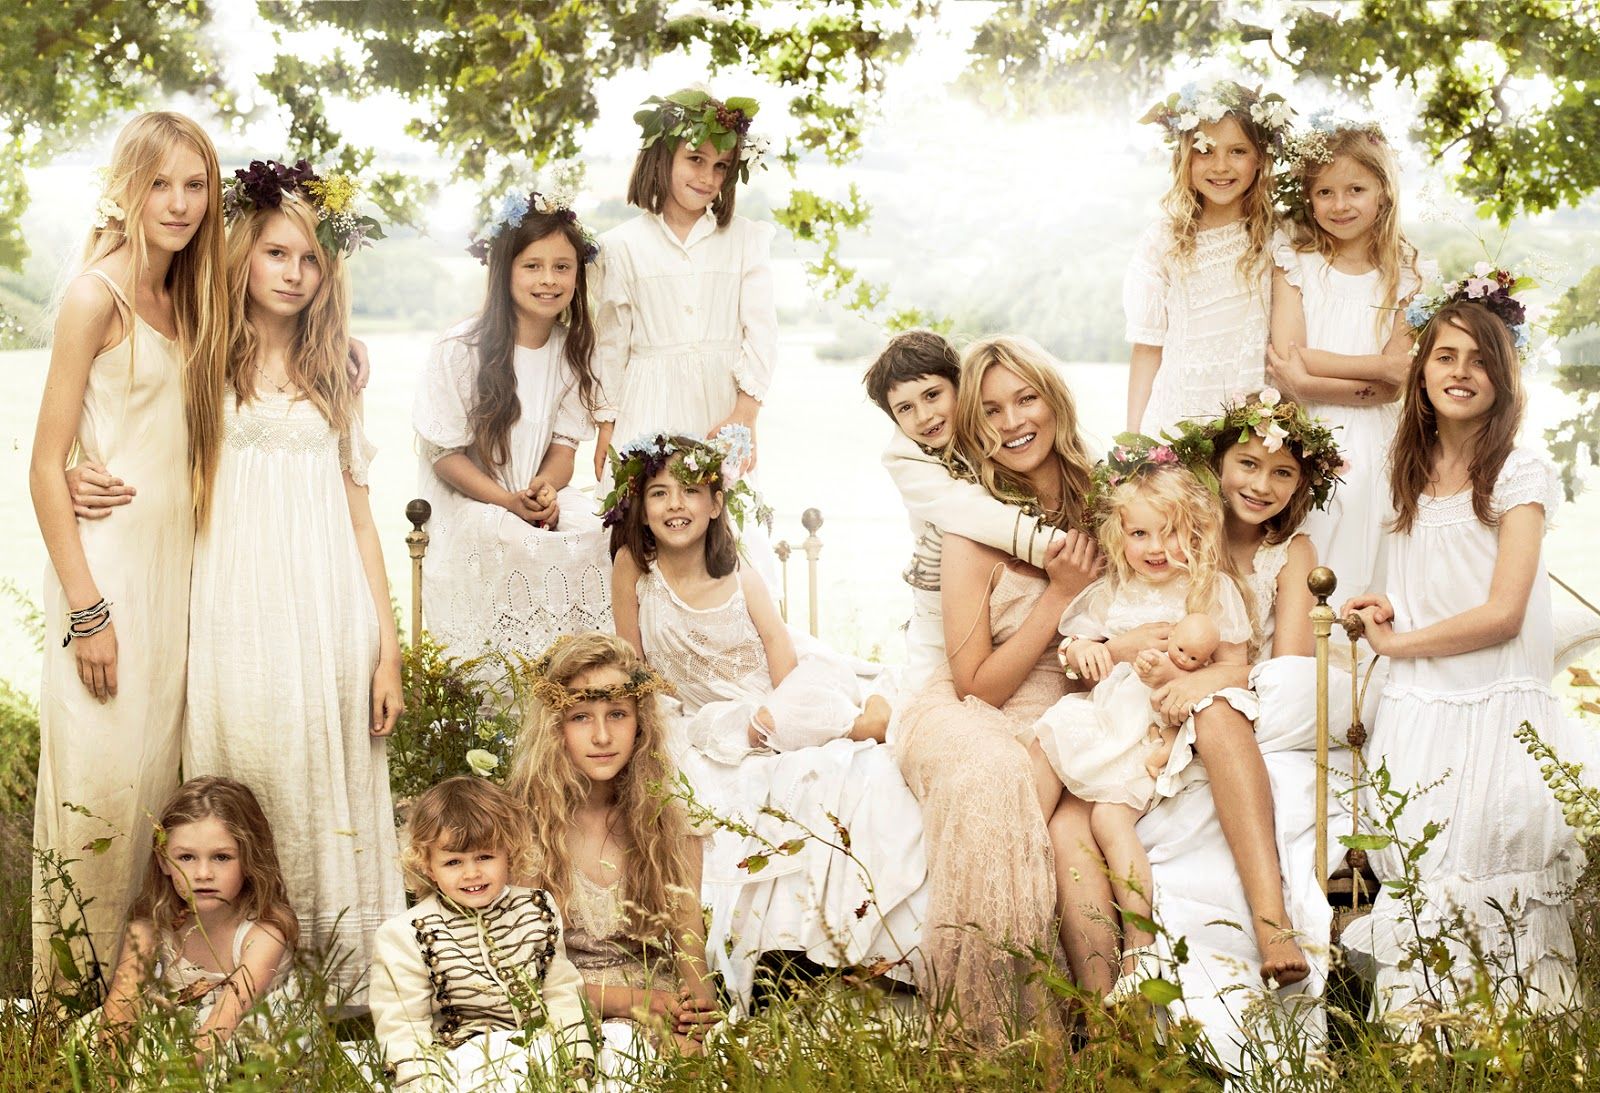 Kate Moss Bridesmaids - Affordable Wedding Dresses: Ethereal